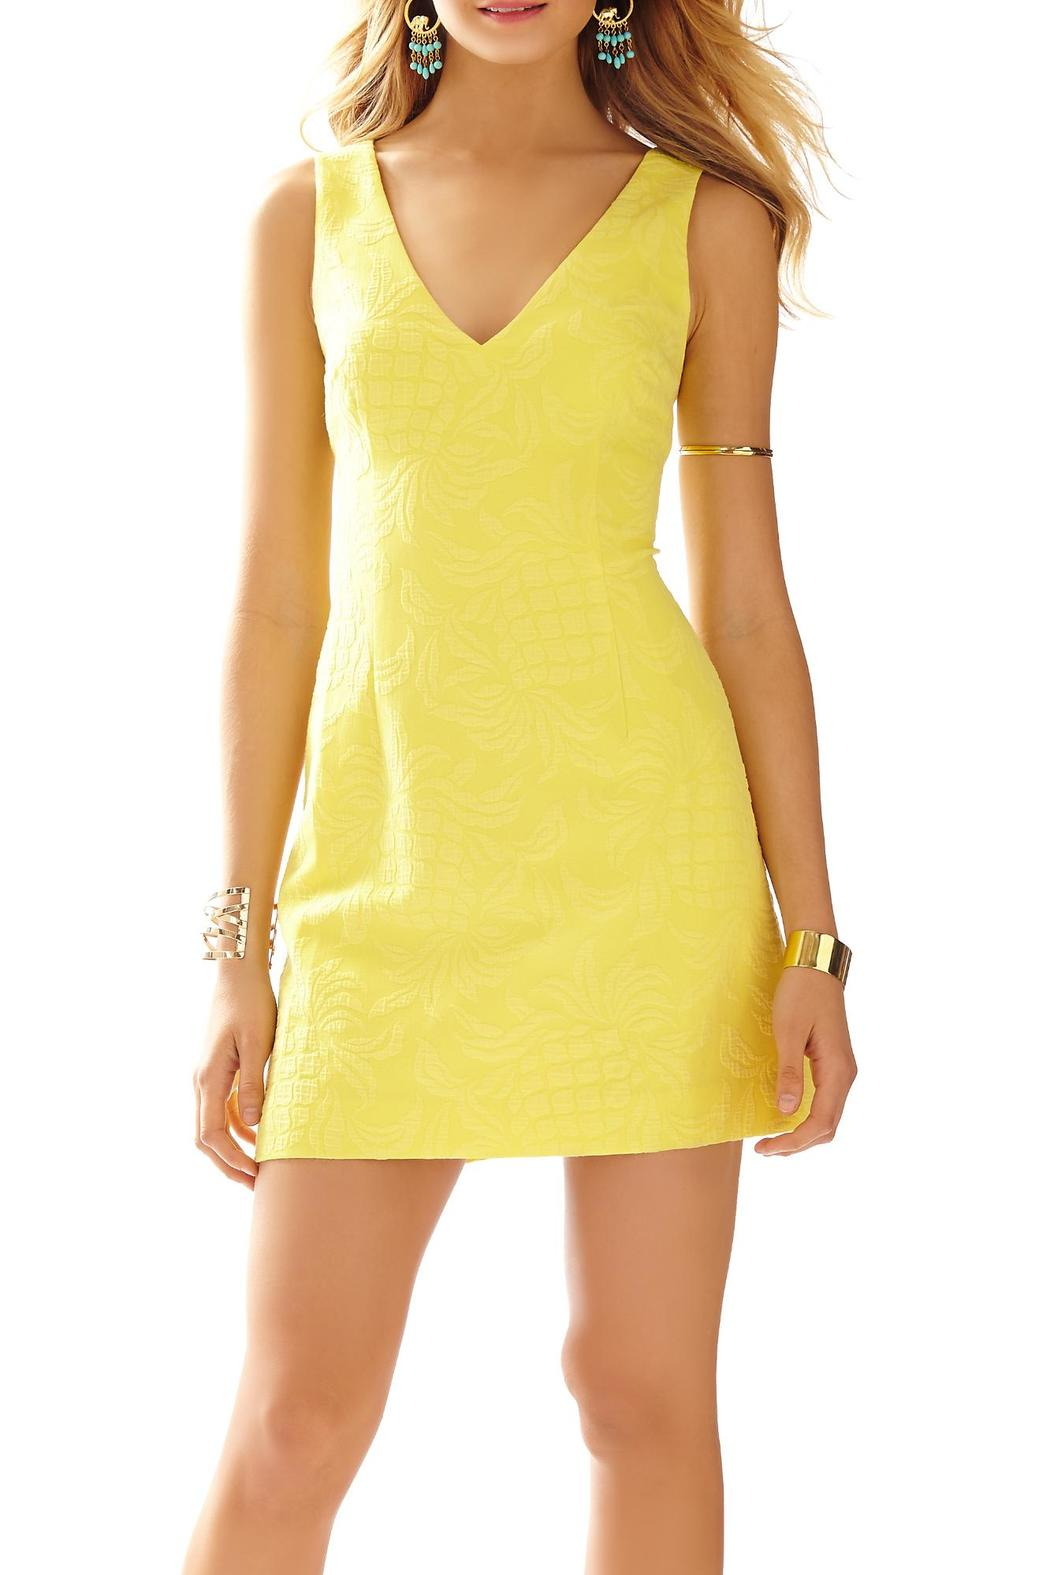 b860abe9cf362a Lilly Pulitzer Madden Dress Pineapple-Jacquard from Sandestin Golf ...